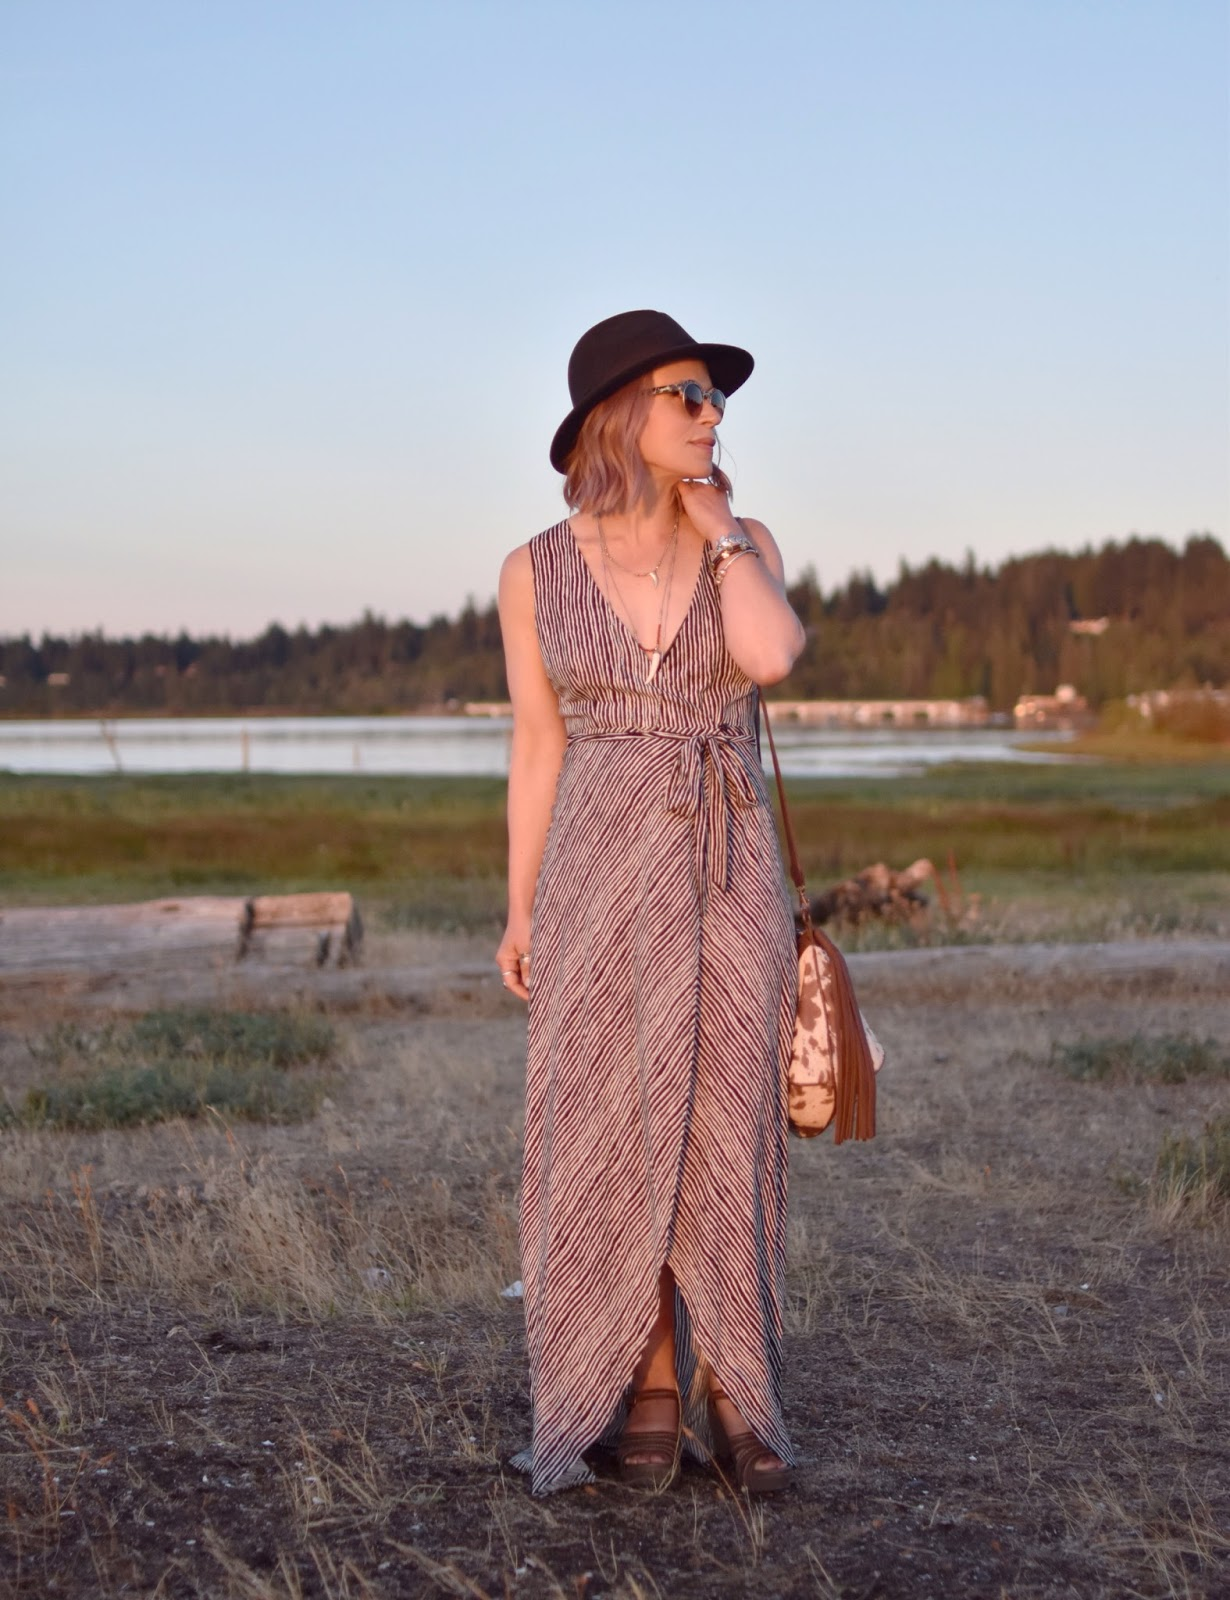 Sundowner:  styling a striped maxi-length wrap dress with a felt fedora and boho accessories